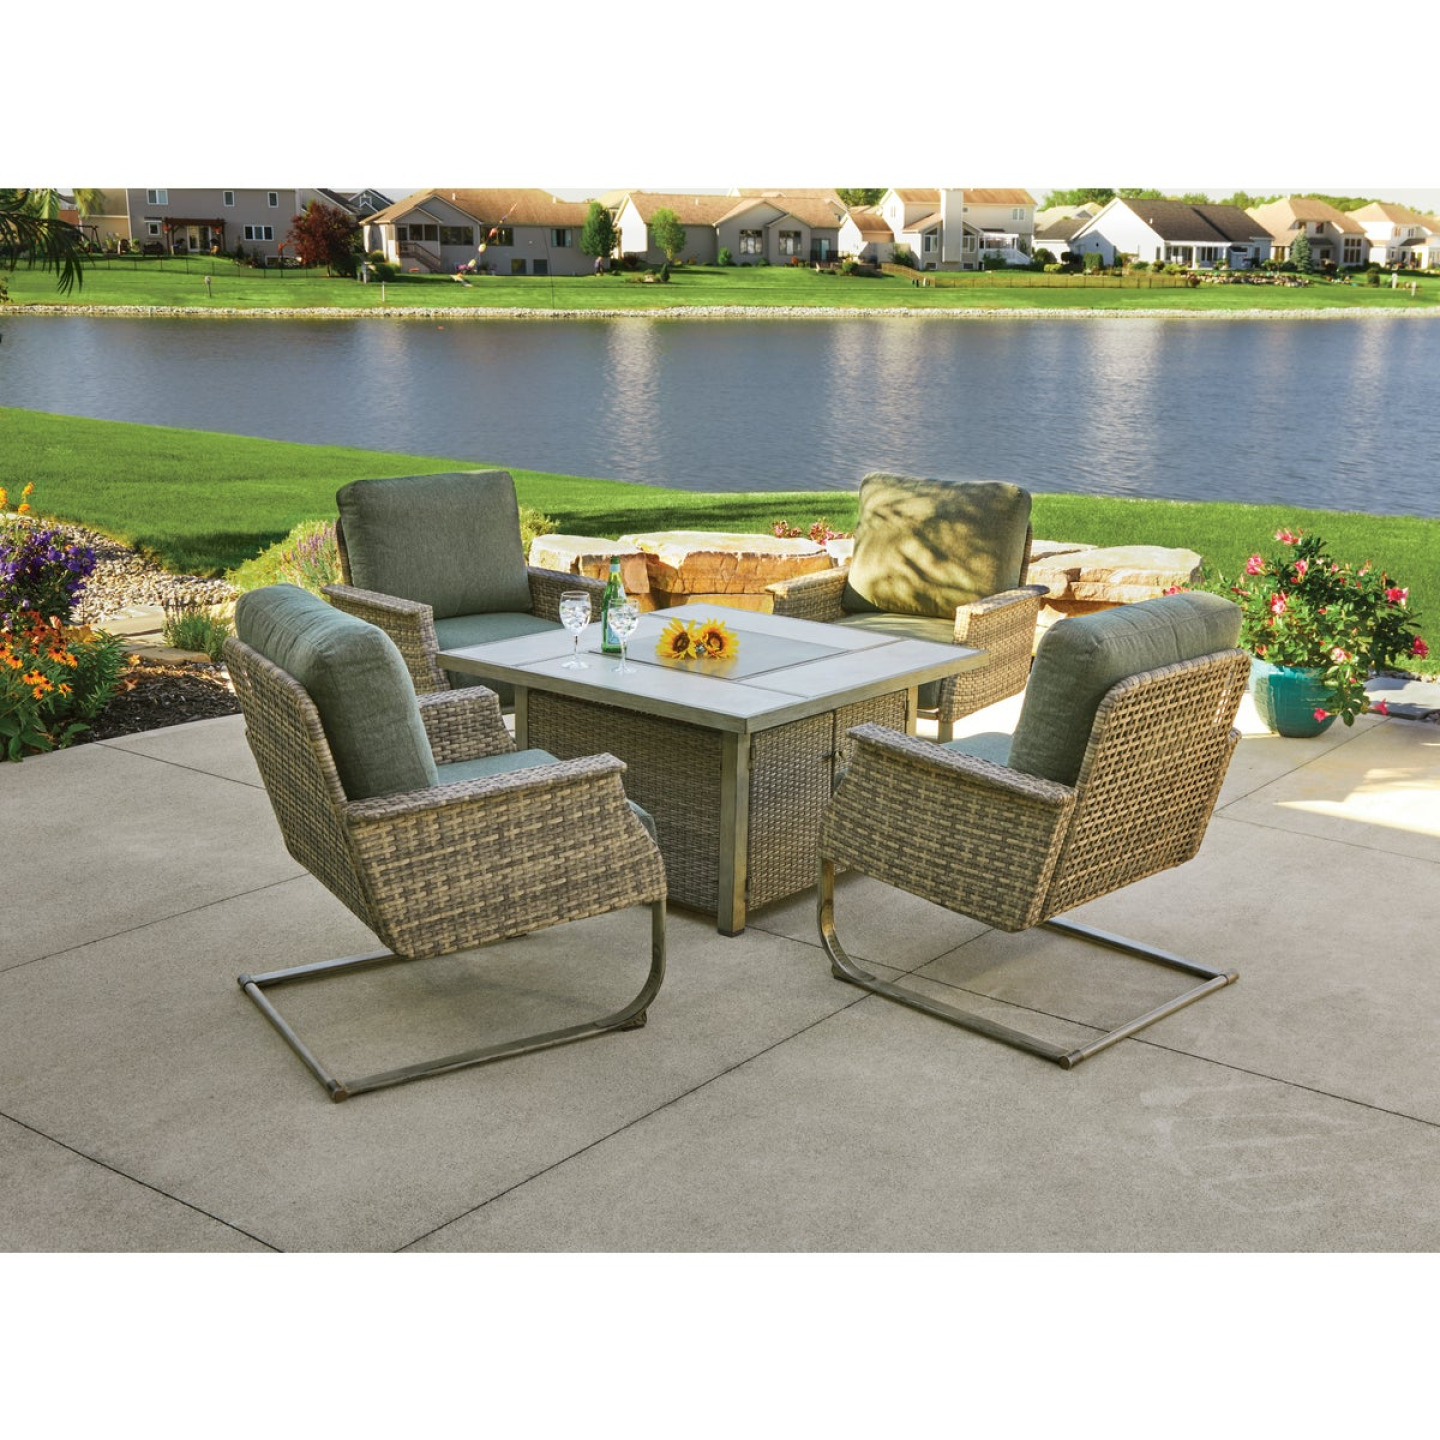 Pacific Casual Shady Creek 5-Piece Gas Fire Pit Chat Set Image 3